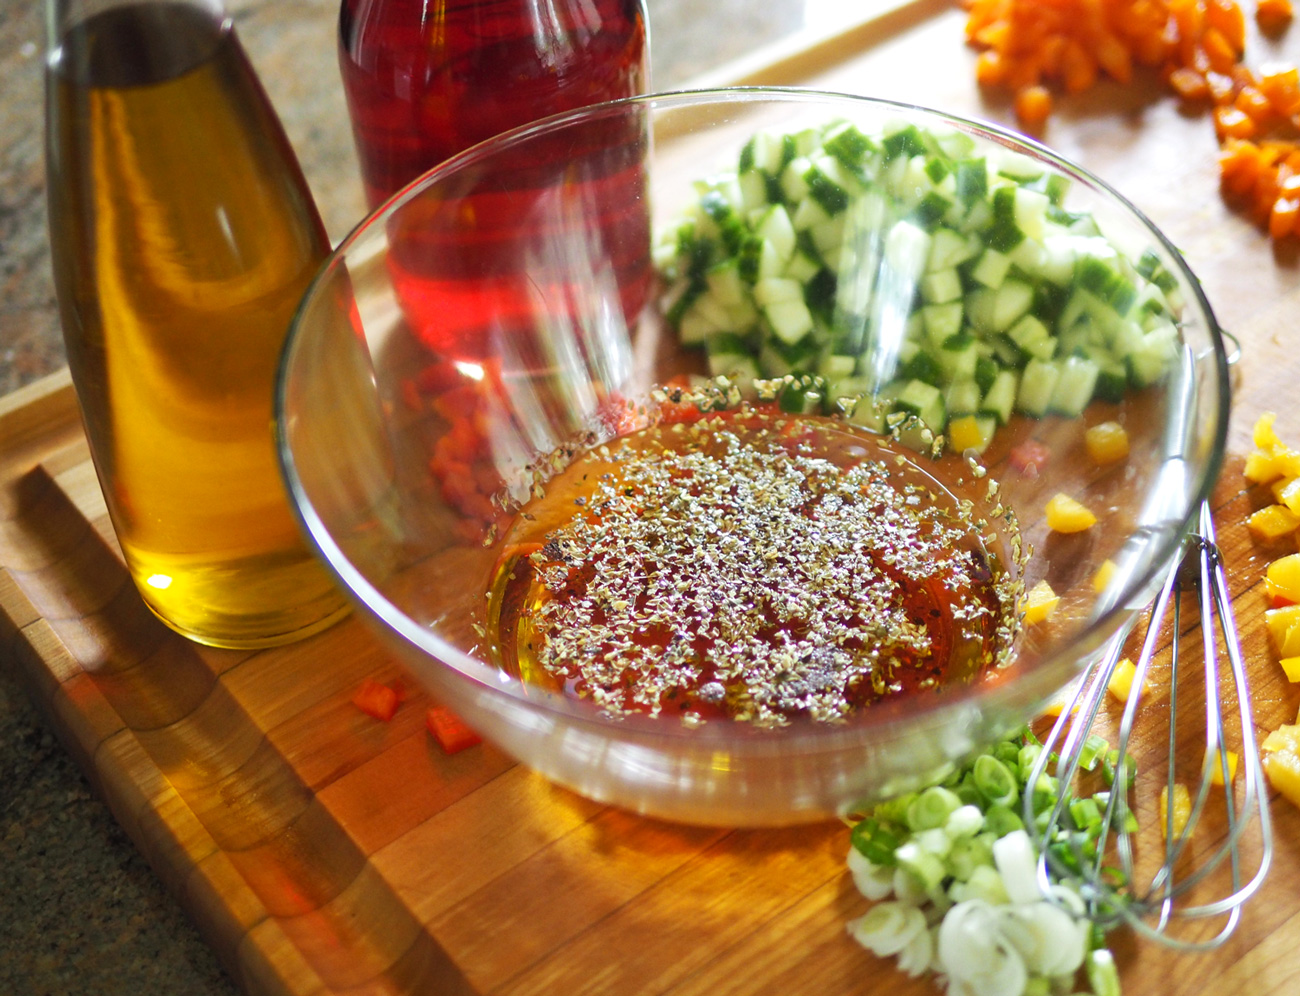 Whisk up or mix up in a jar, and dress the salad up.